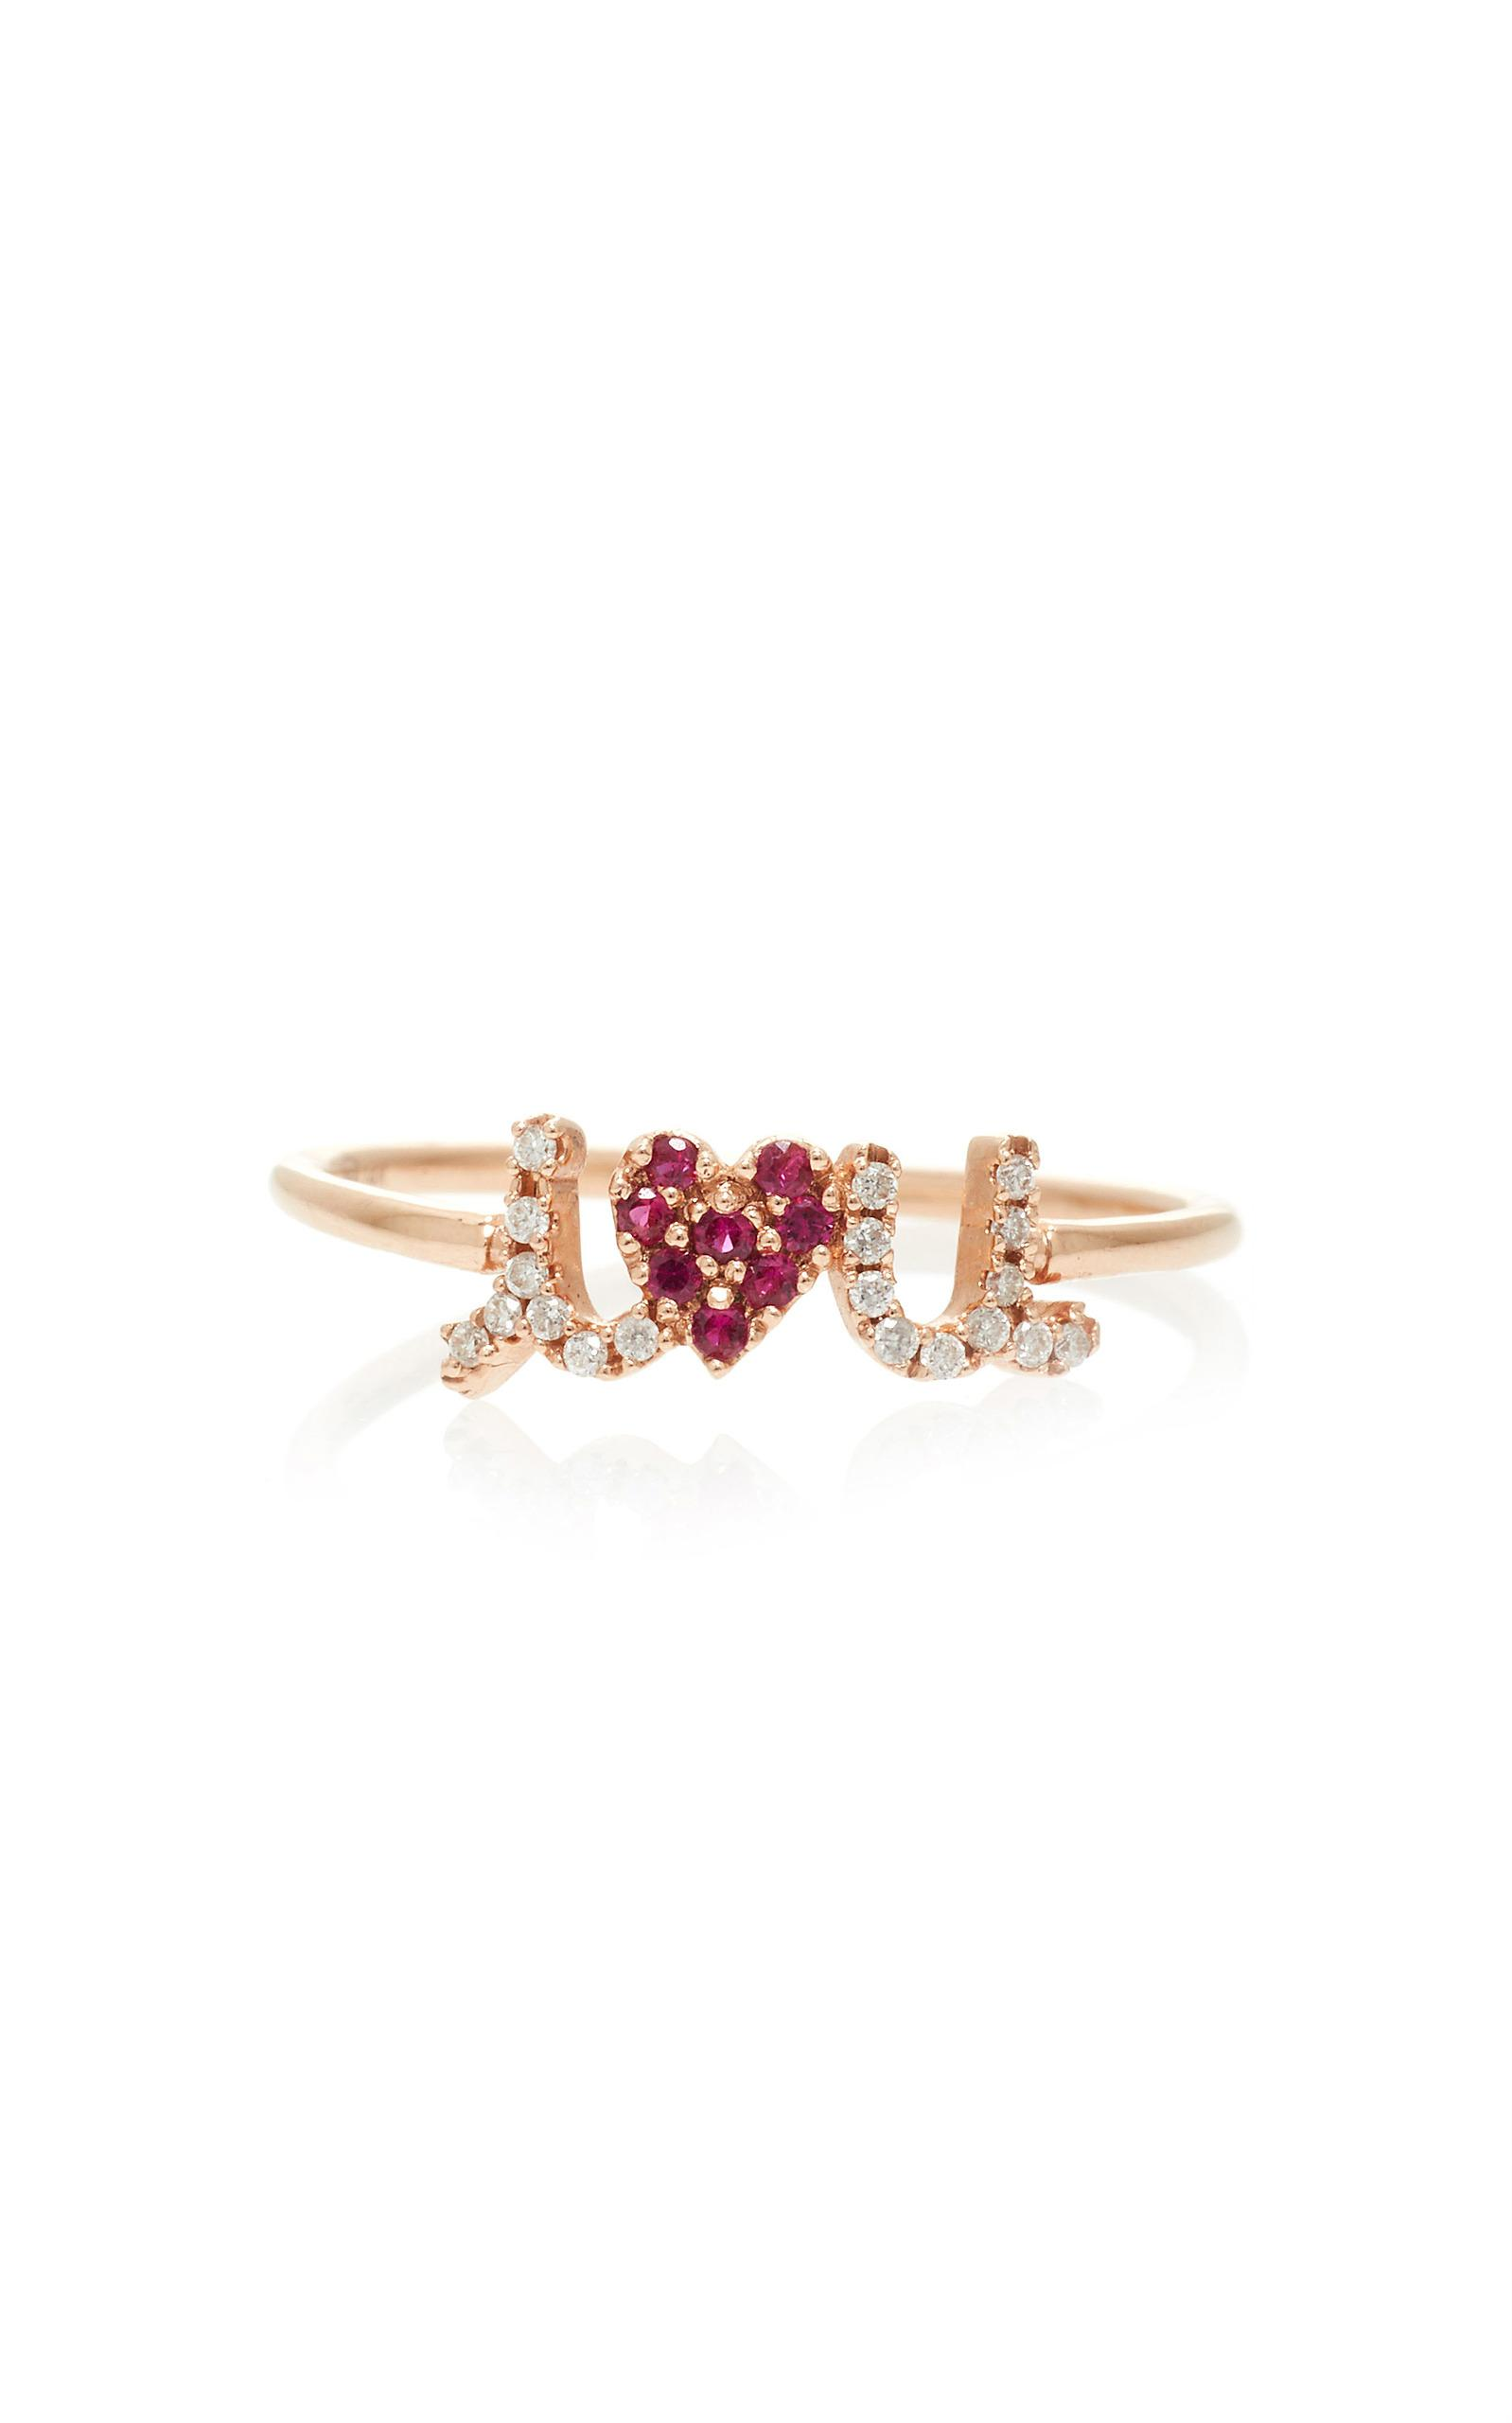 Sydney Evan 14k Rose Gold I Love You Ring In Multi